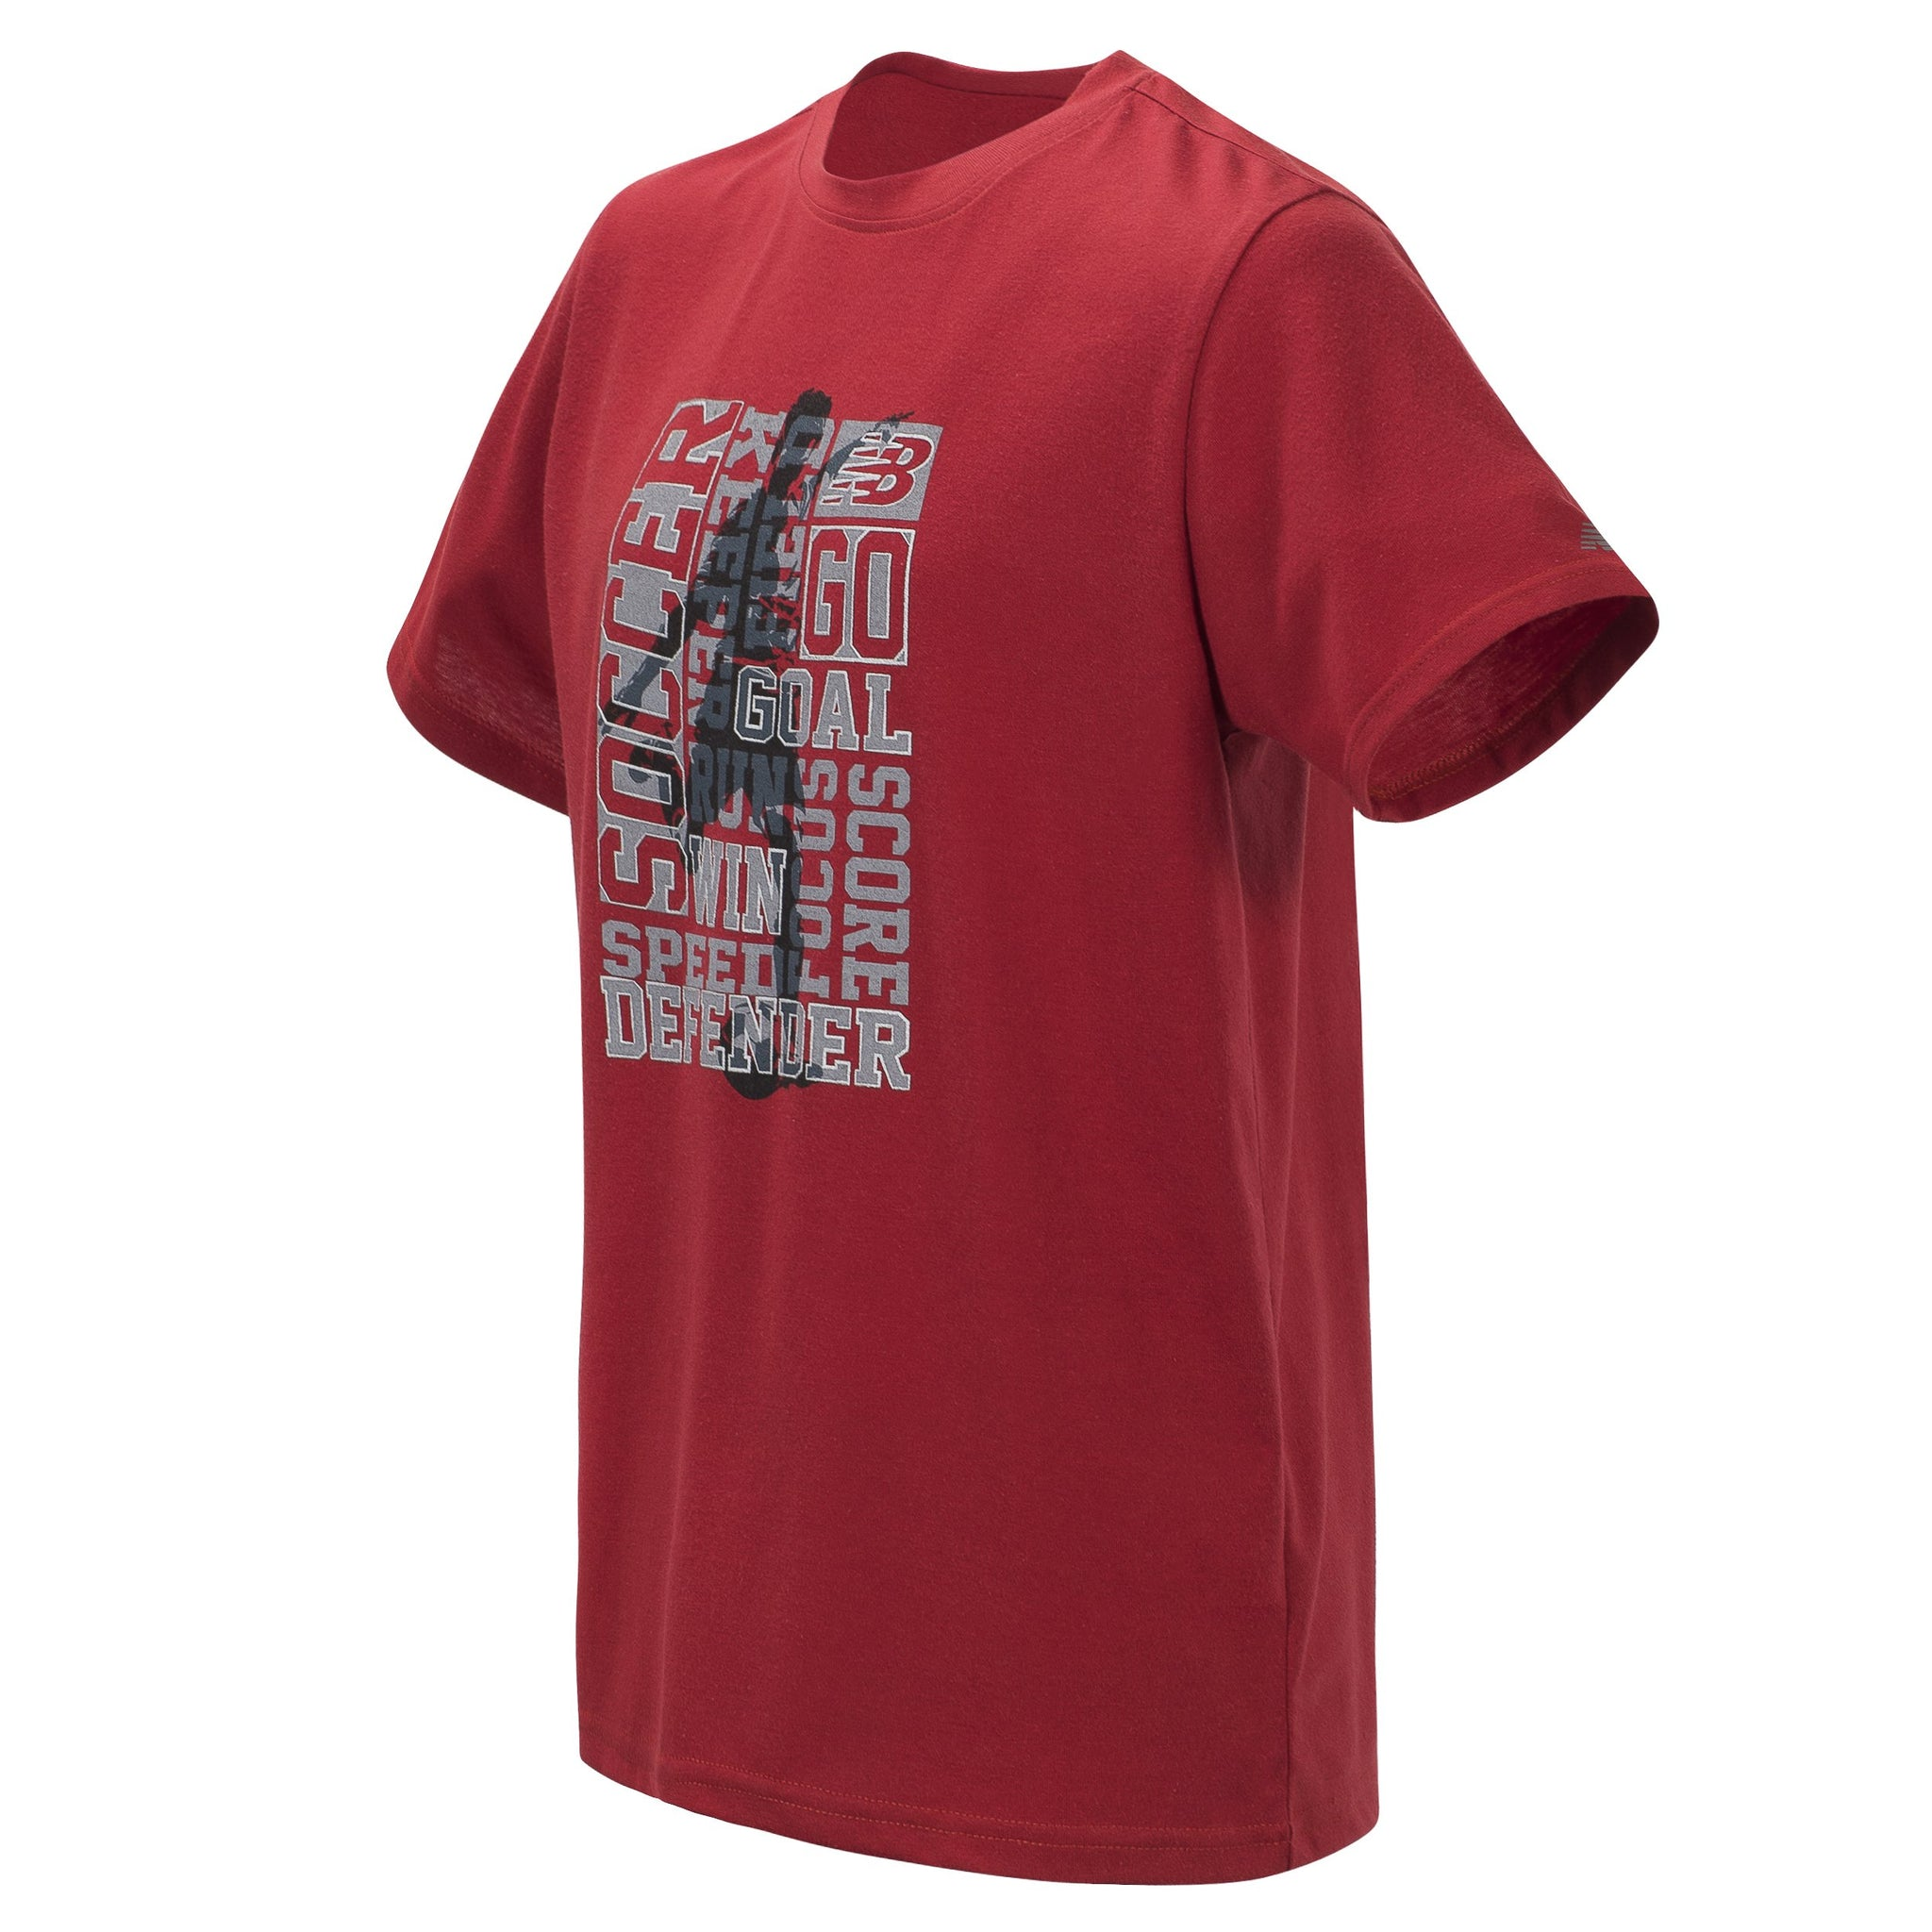 Boys' Tempo Red Short Sleeve Graphic Tee-Gerber Childrenswear